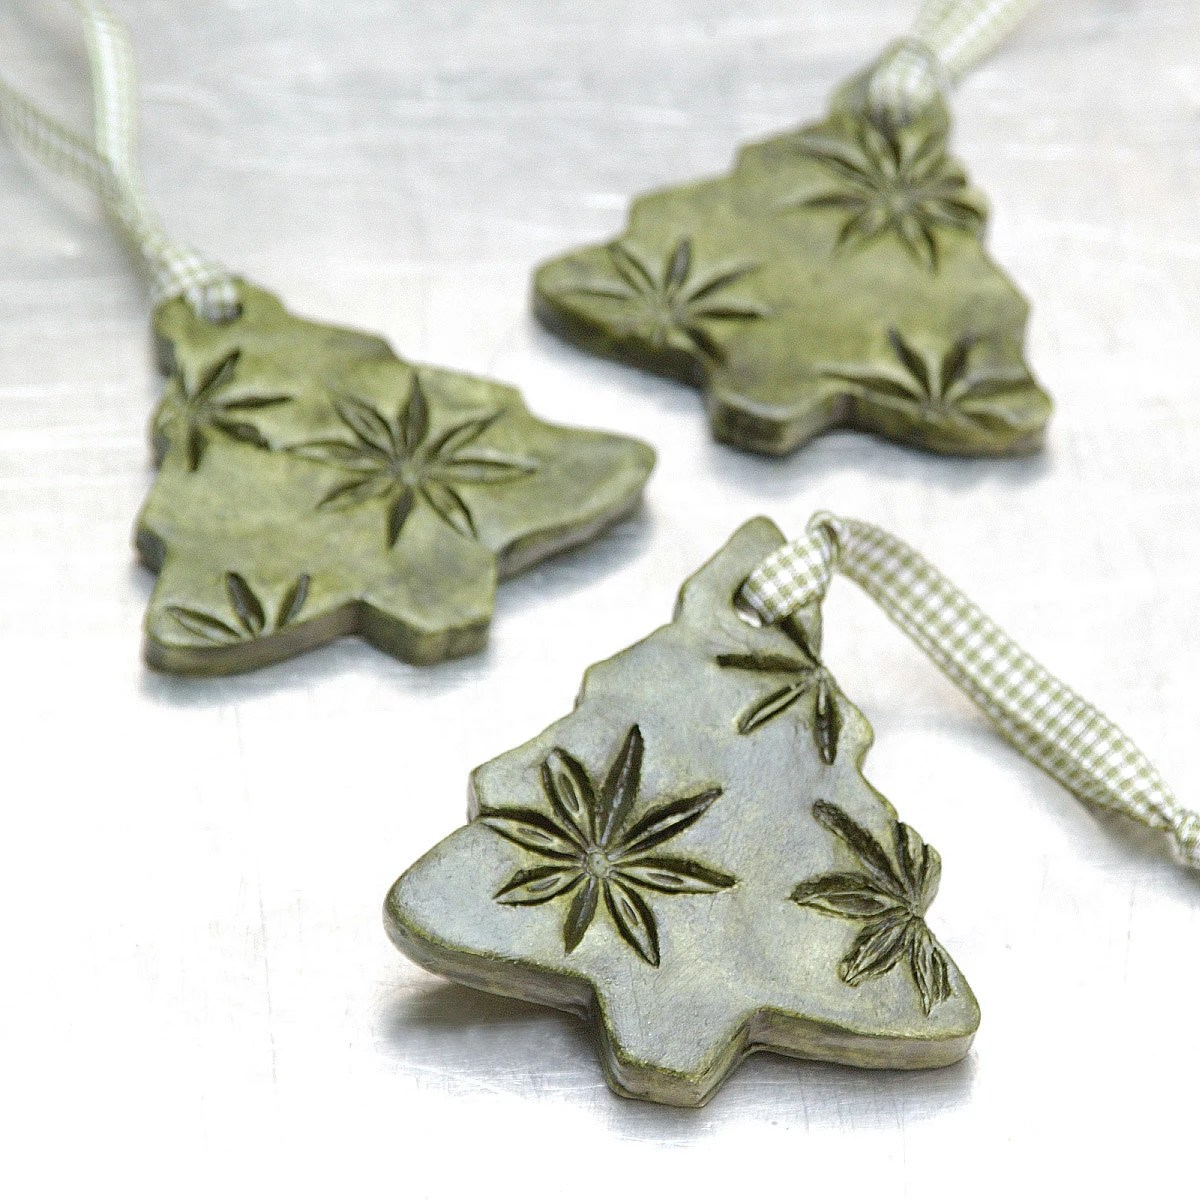 Keramik Glasur Selbst Herstellen Ceramic Ornament With Star Anise Impressions By